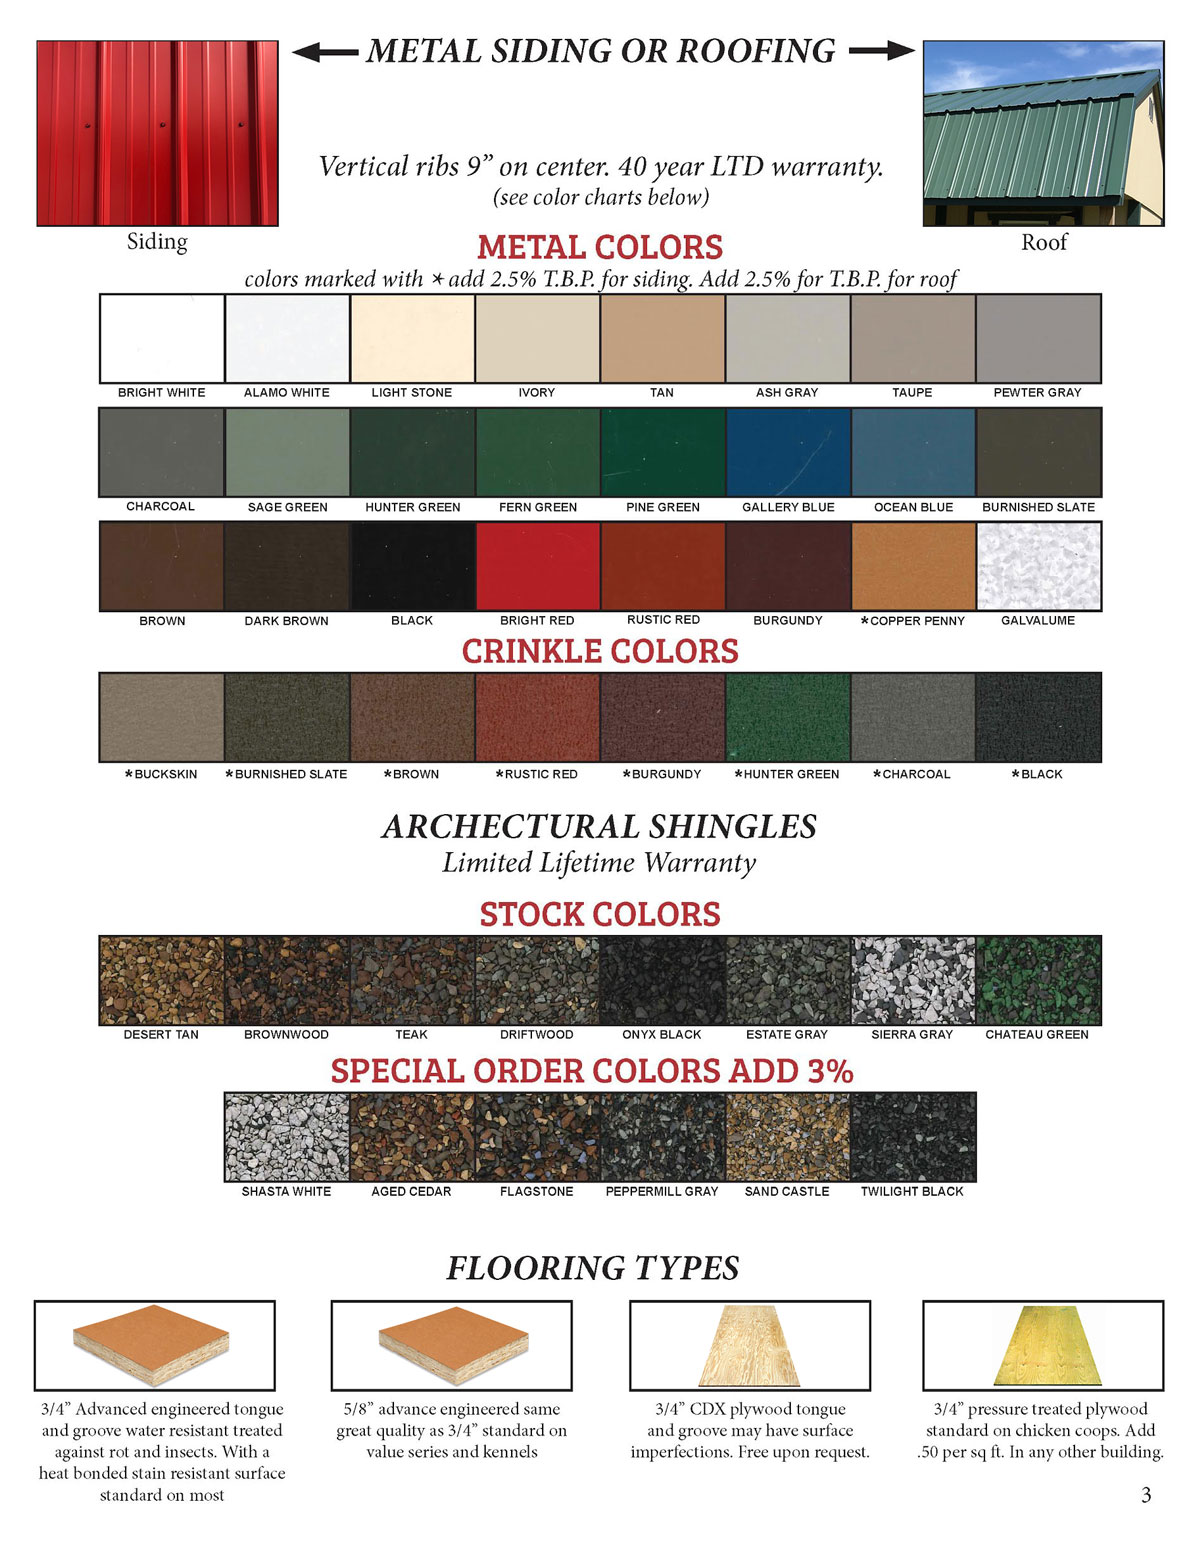 Diagram showing metal siding, roofing, and flooring options for sheds